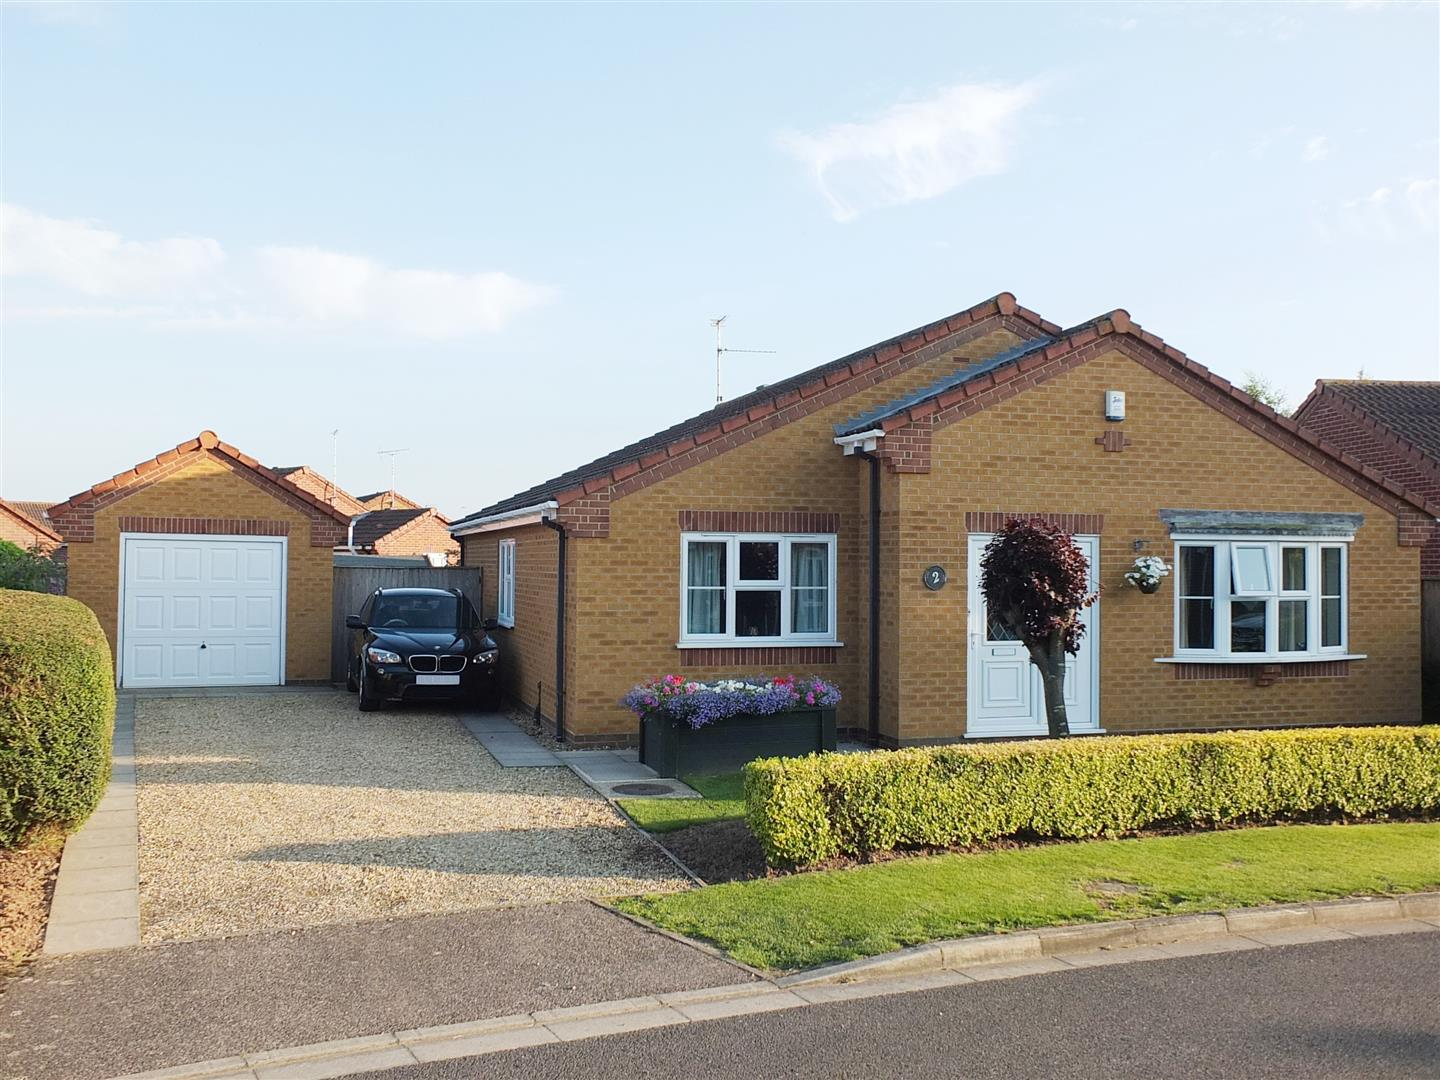 3 bed detached bungalow for sale in Long Sutton Spalding, PE12 9FX, PE12